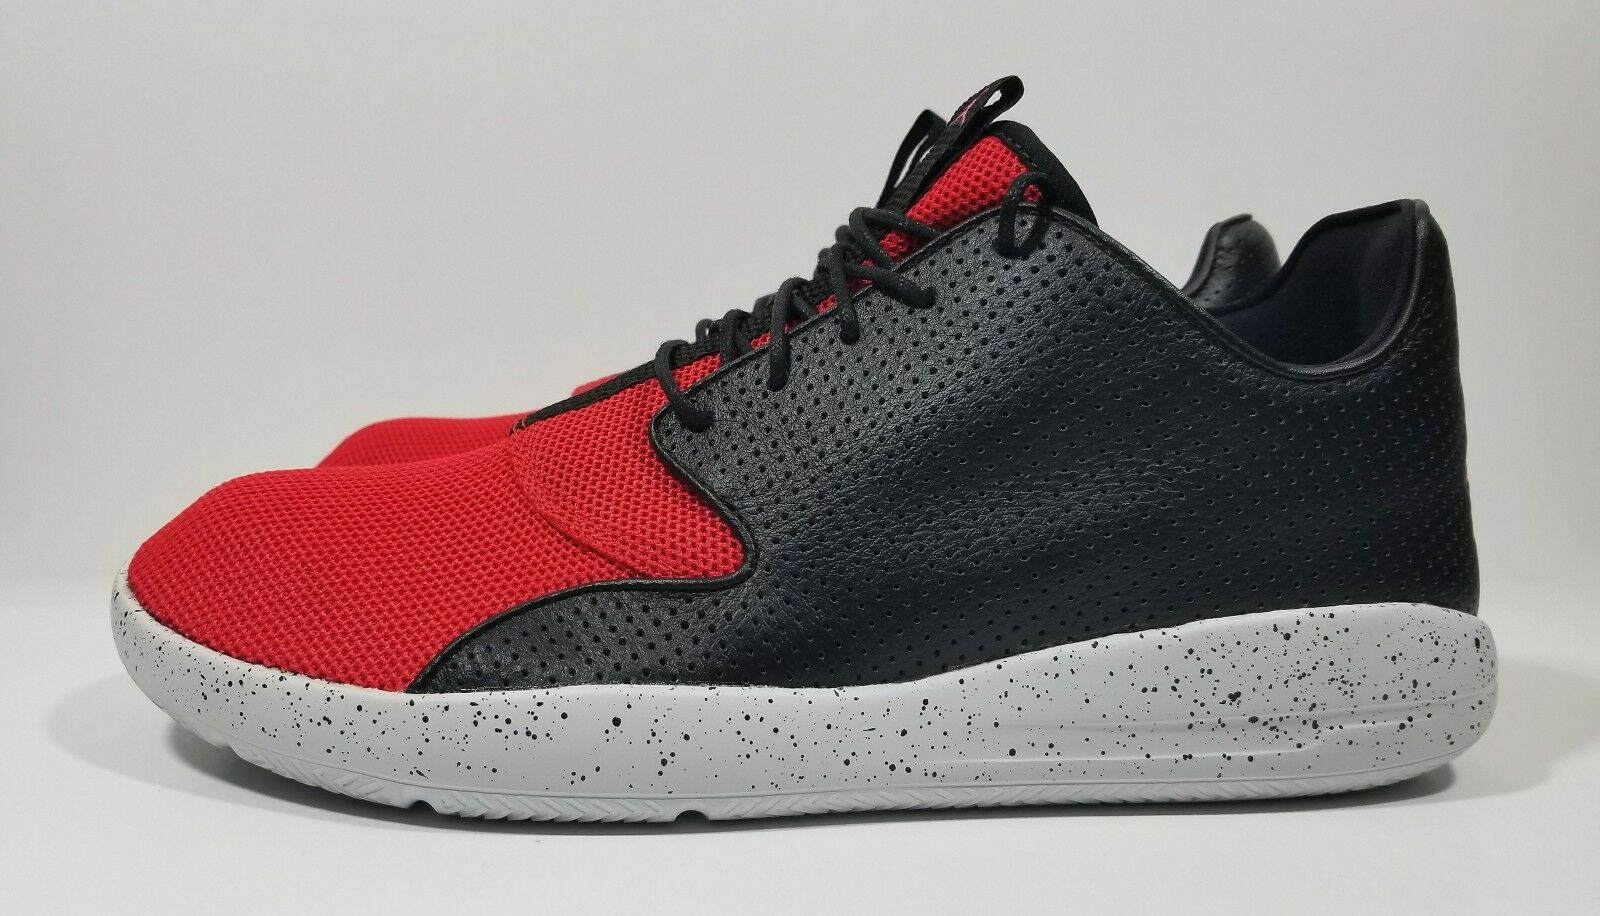 save off 568e7 38000 ... new style nike shoes air jordan eclipse mens basketball shoes nike black  red multi sizes 71ff08